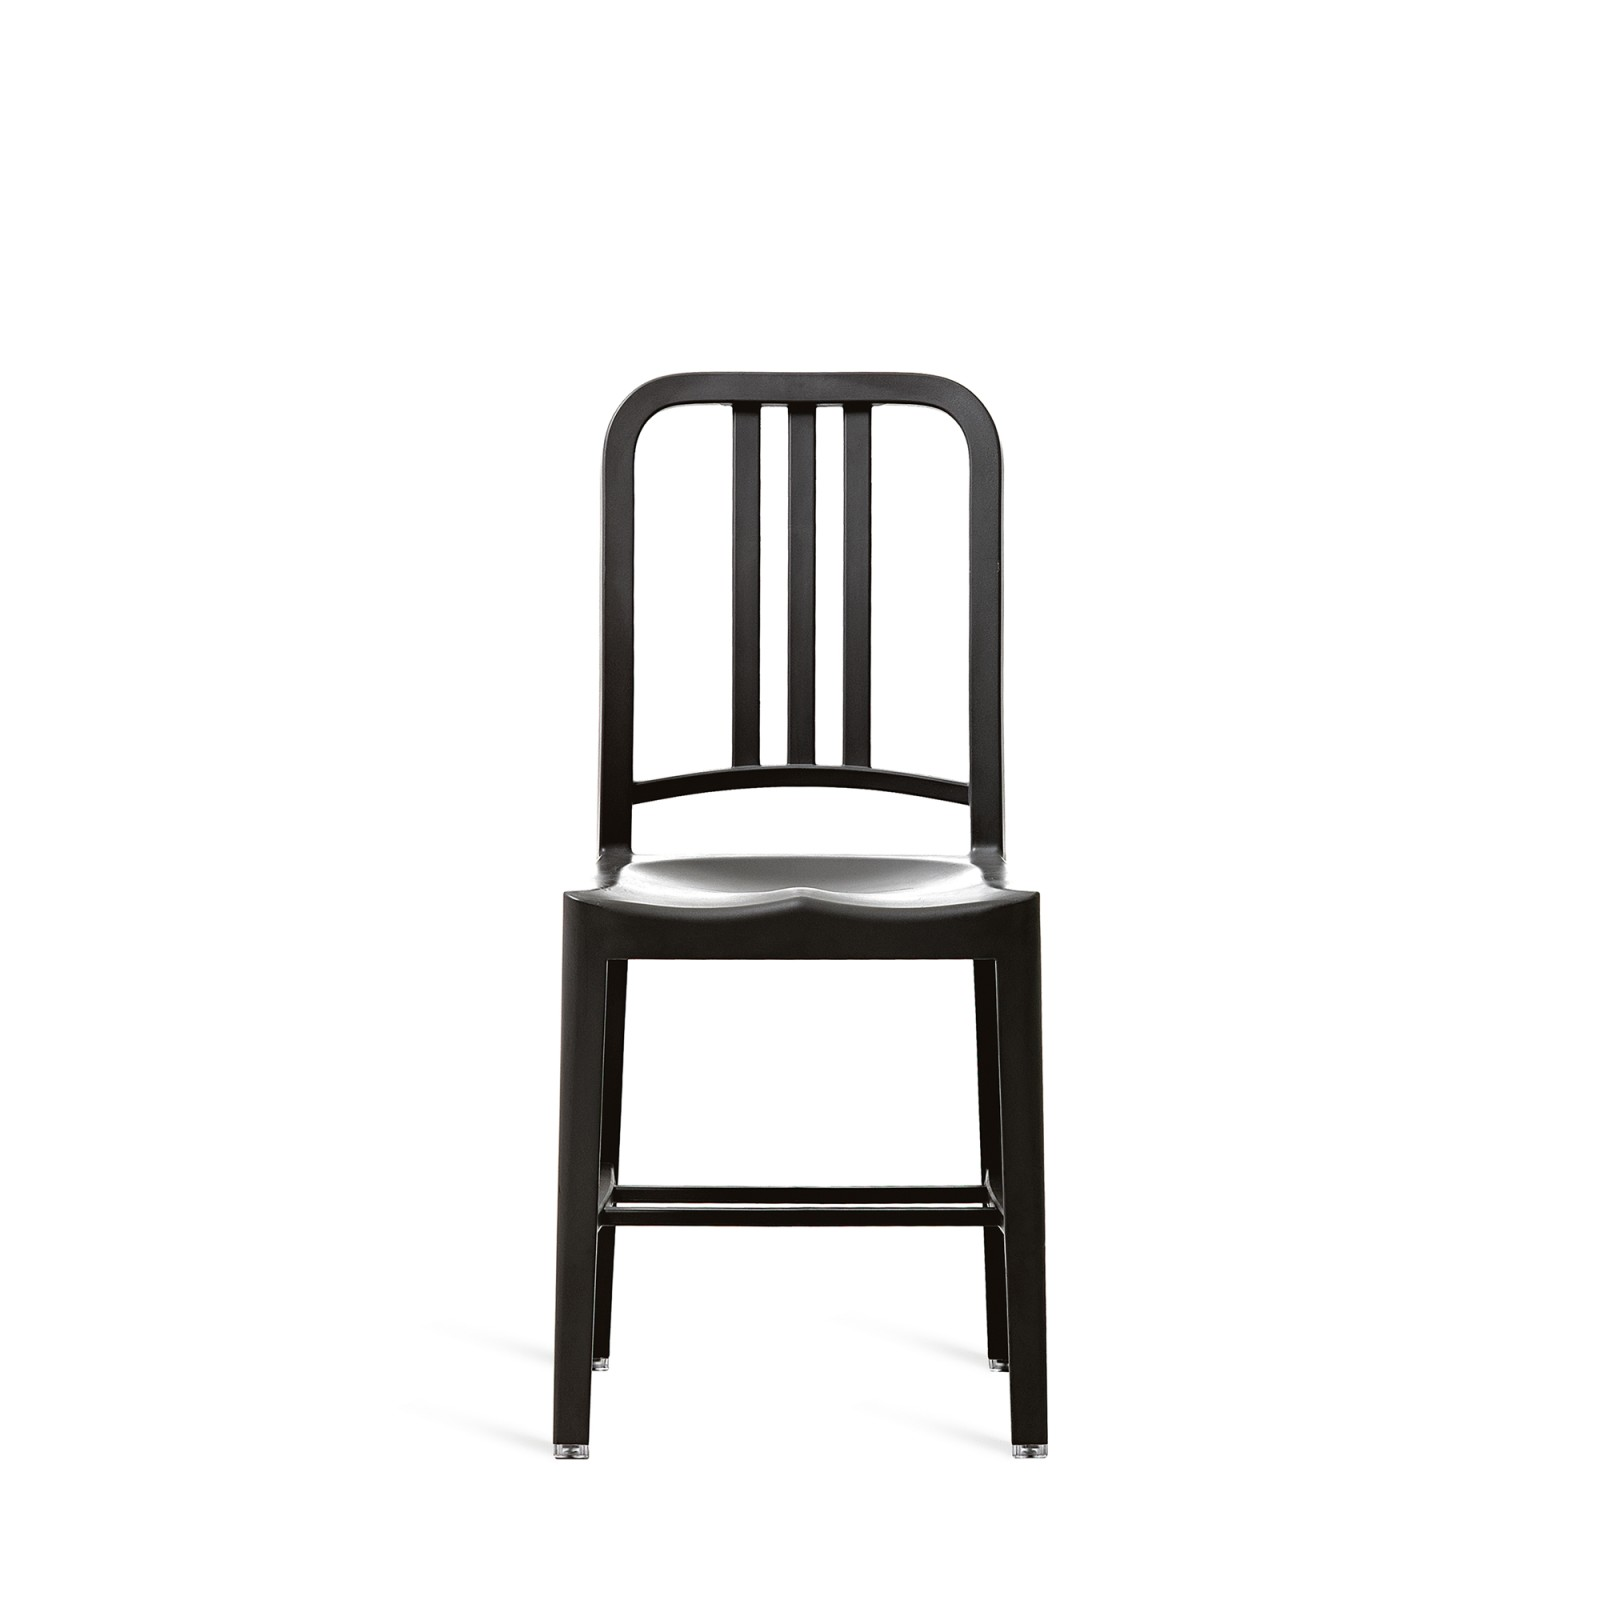 111 Navy Dining Chair - Set of 2 Charcoal